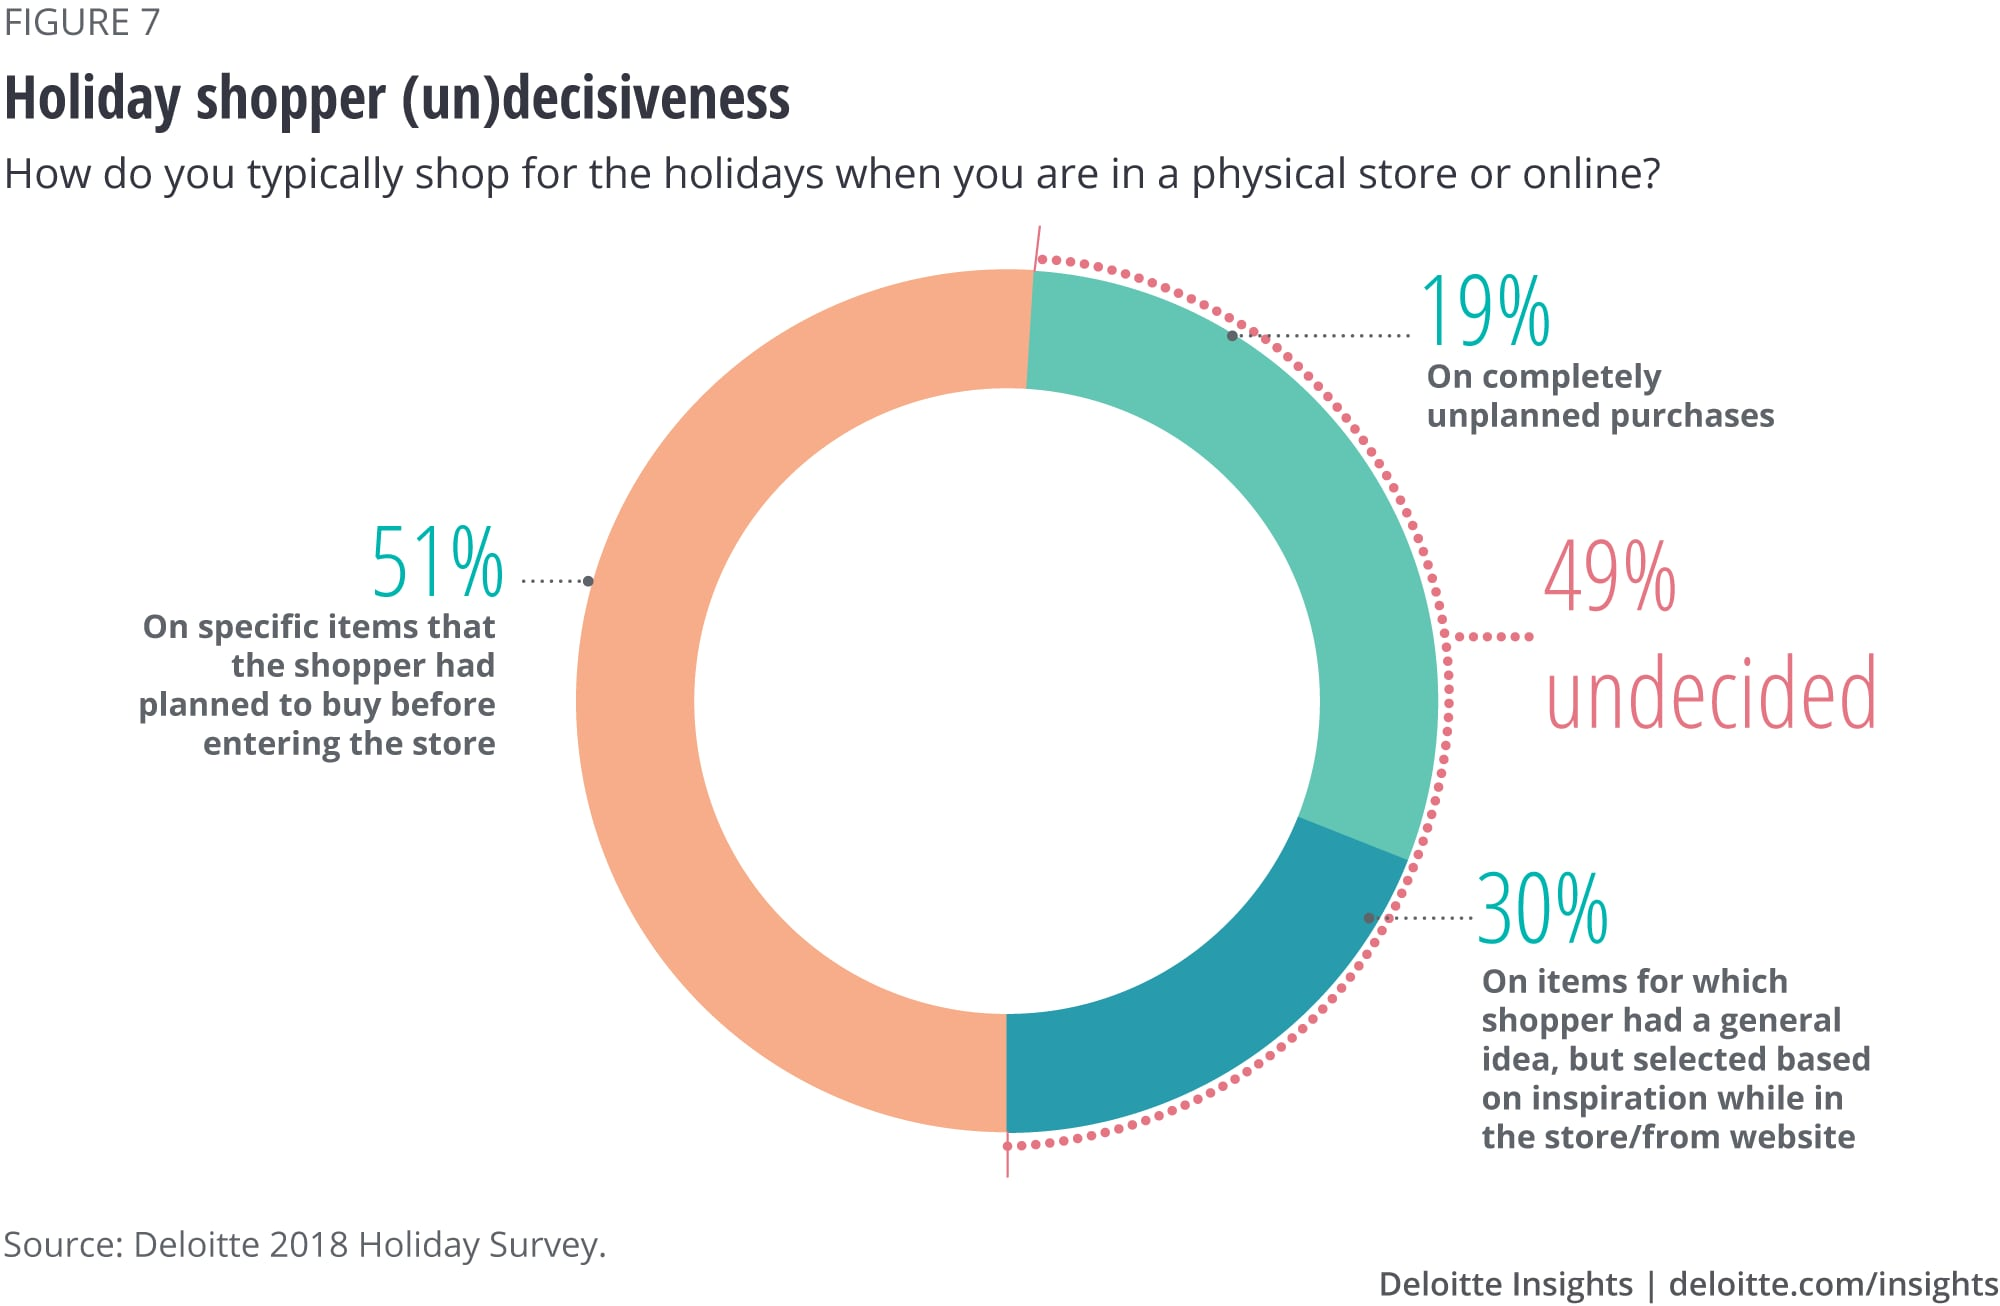 Holiday shopper (un)decisiveness